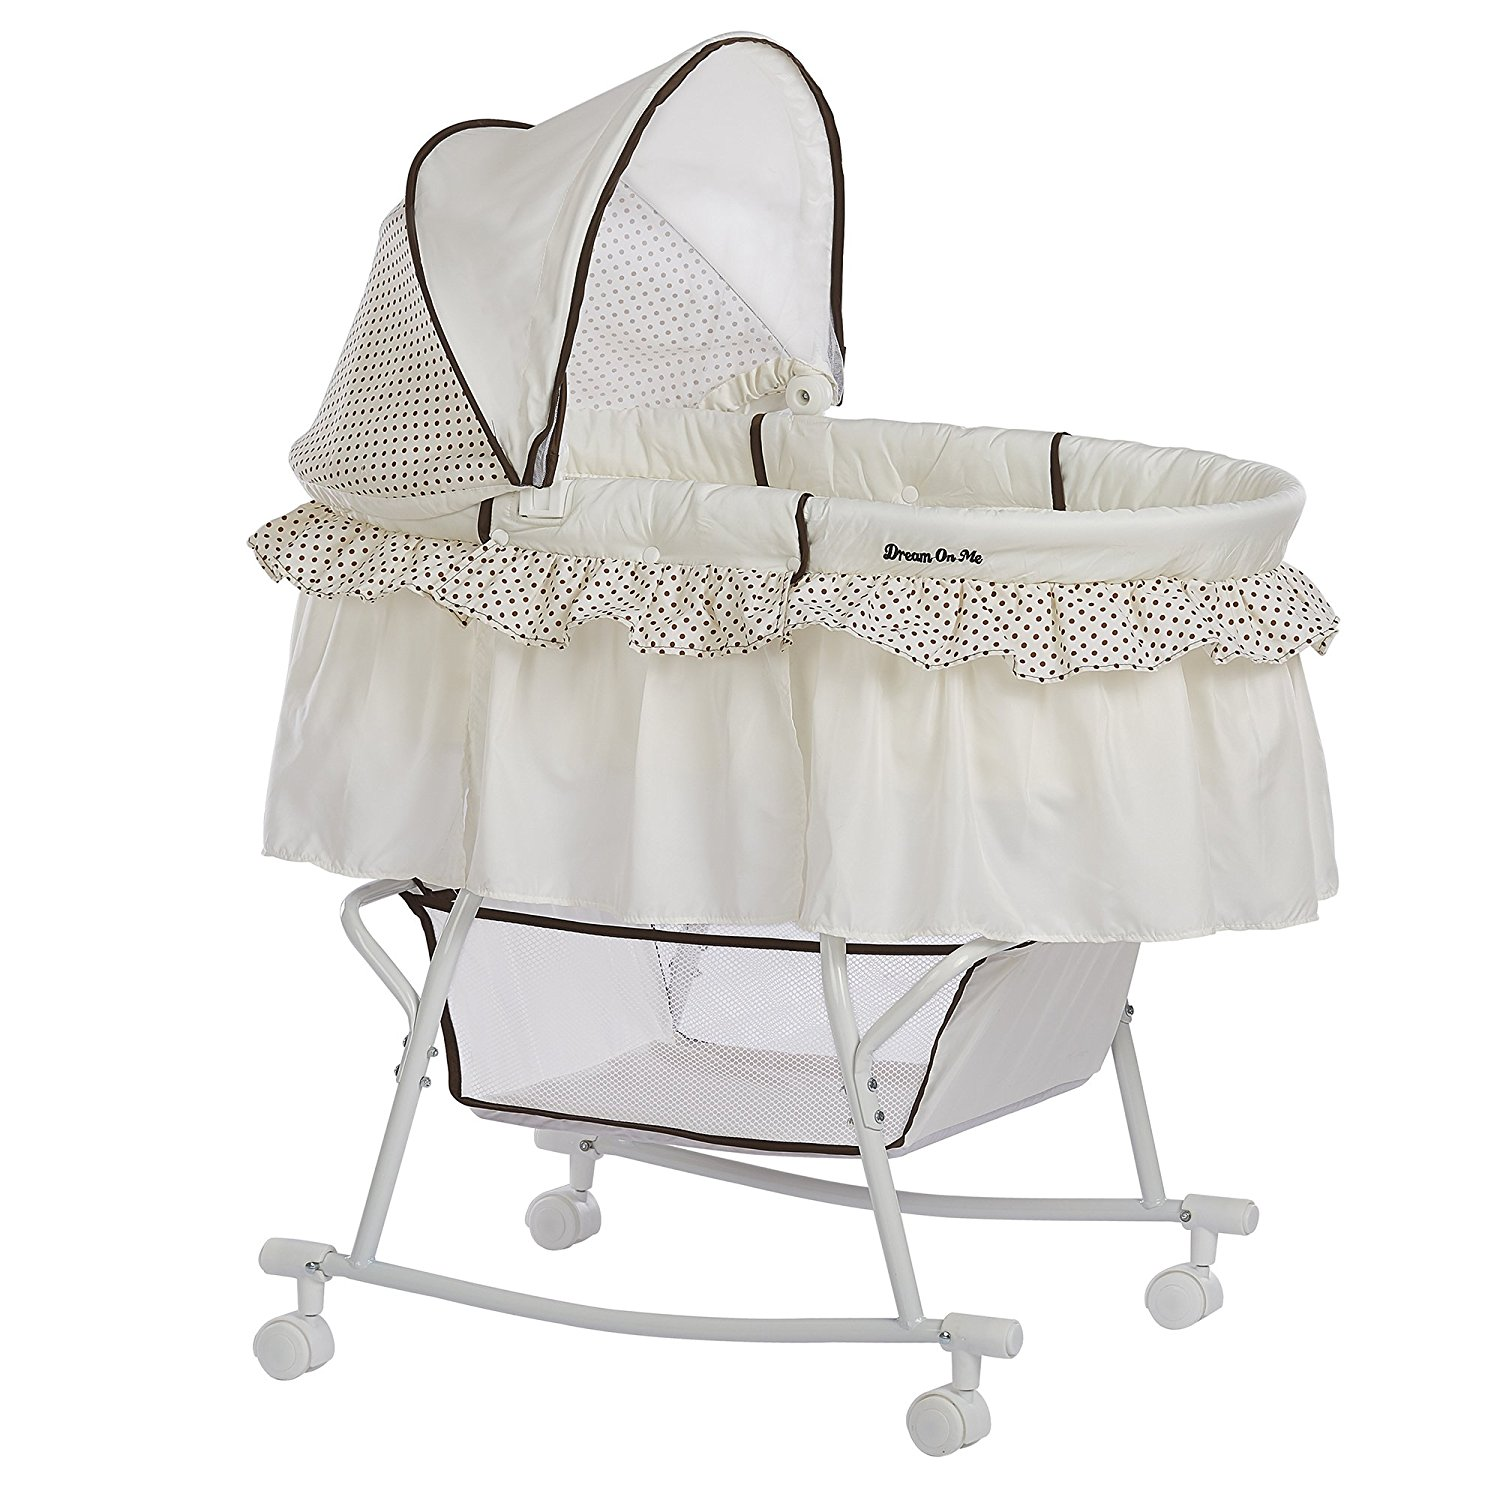 Lacy Portable 2-in-1 Bassinet, Spacious bassinet with hooded locking wheels By Dream On Me